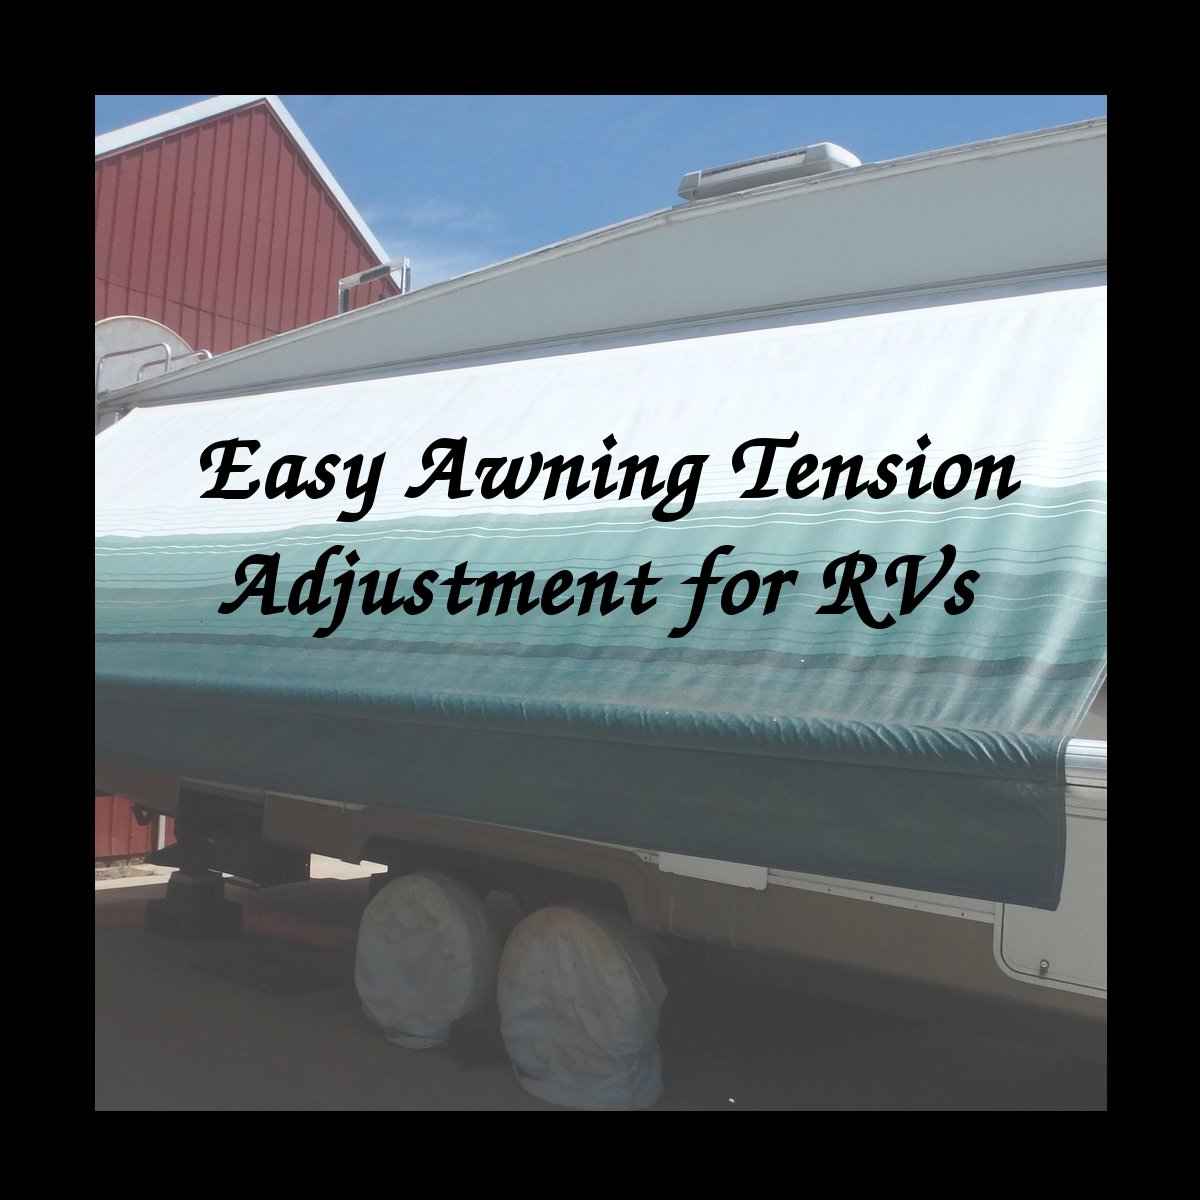 Picture of RV Awning Tension Adjustment